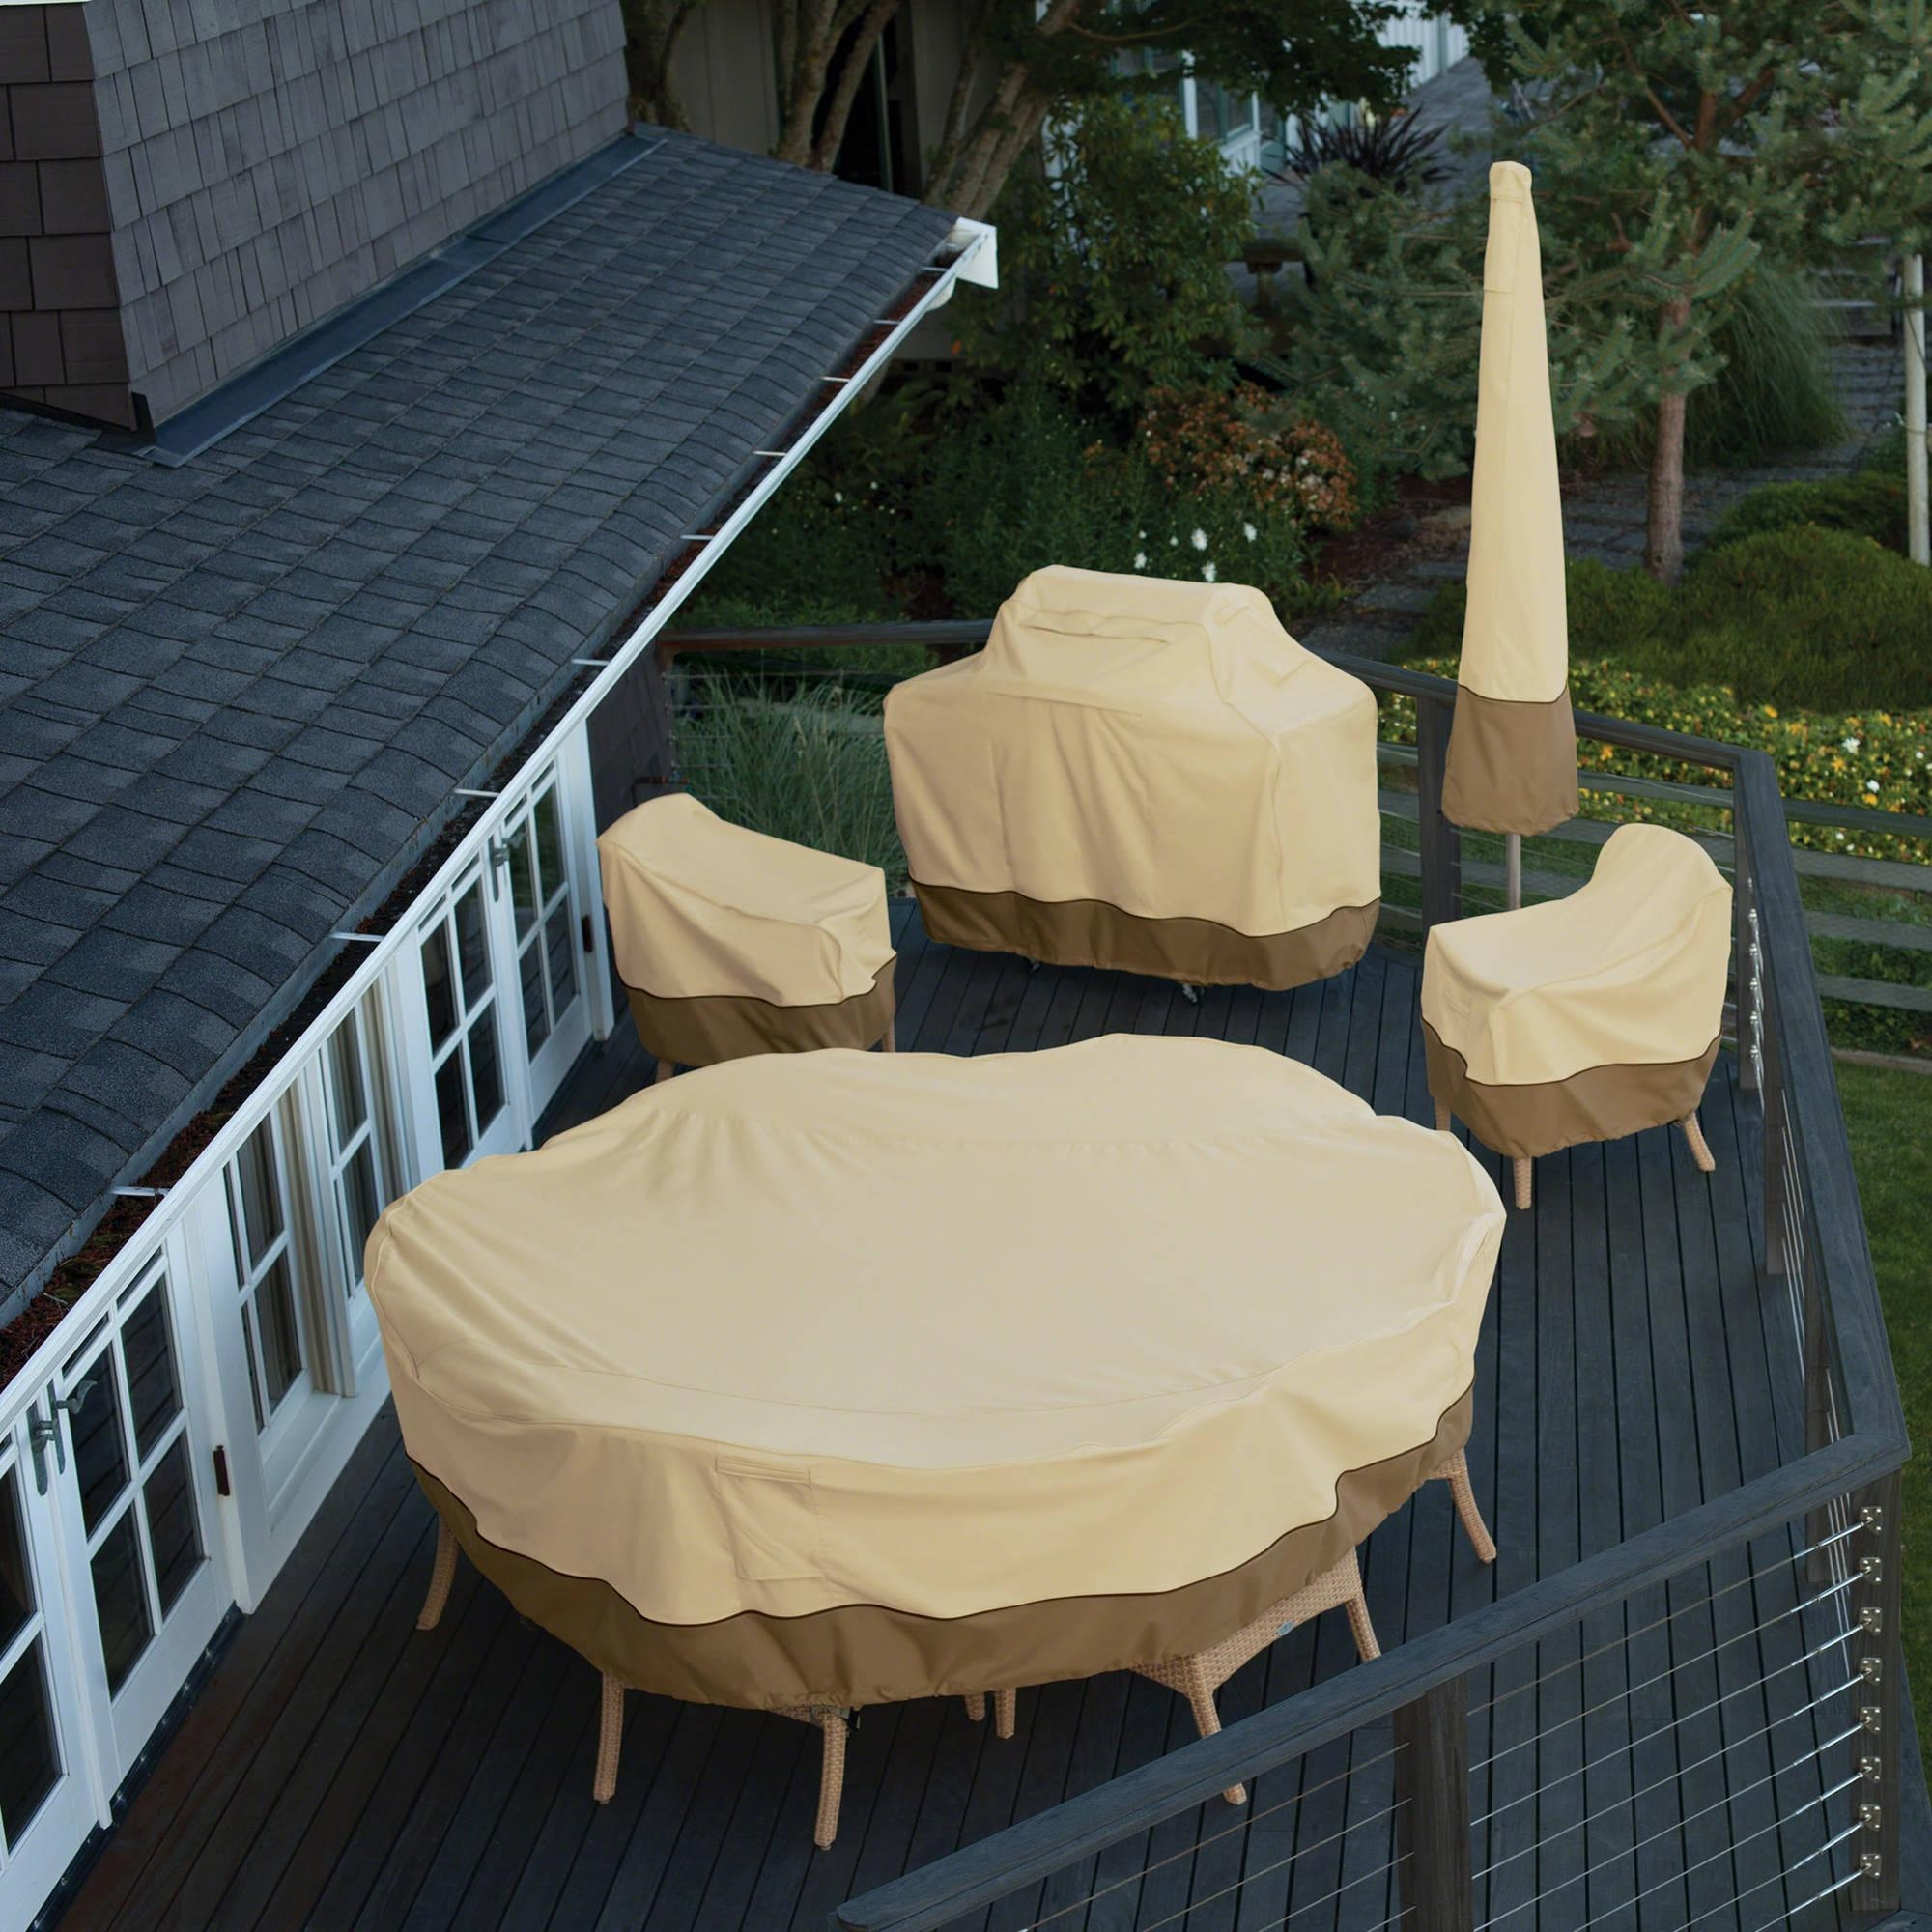 Classic Accessories Veranda Round Patio Table & Chair Set Cover For Garden Sofa Covers (View 18 of 22)